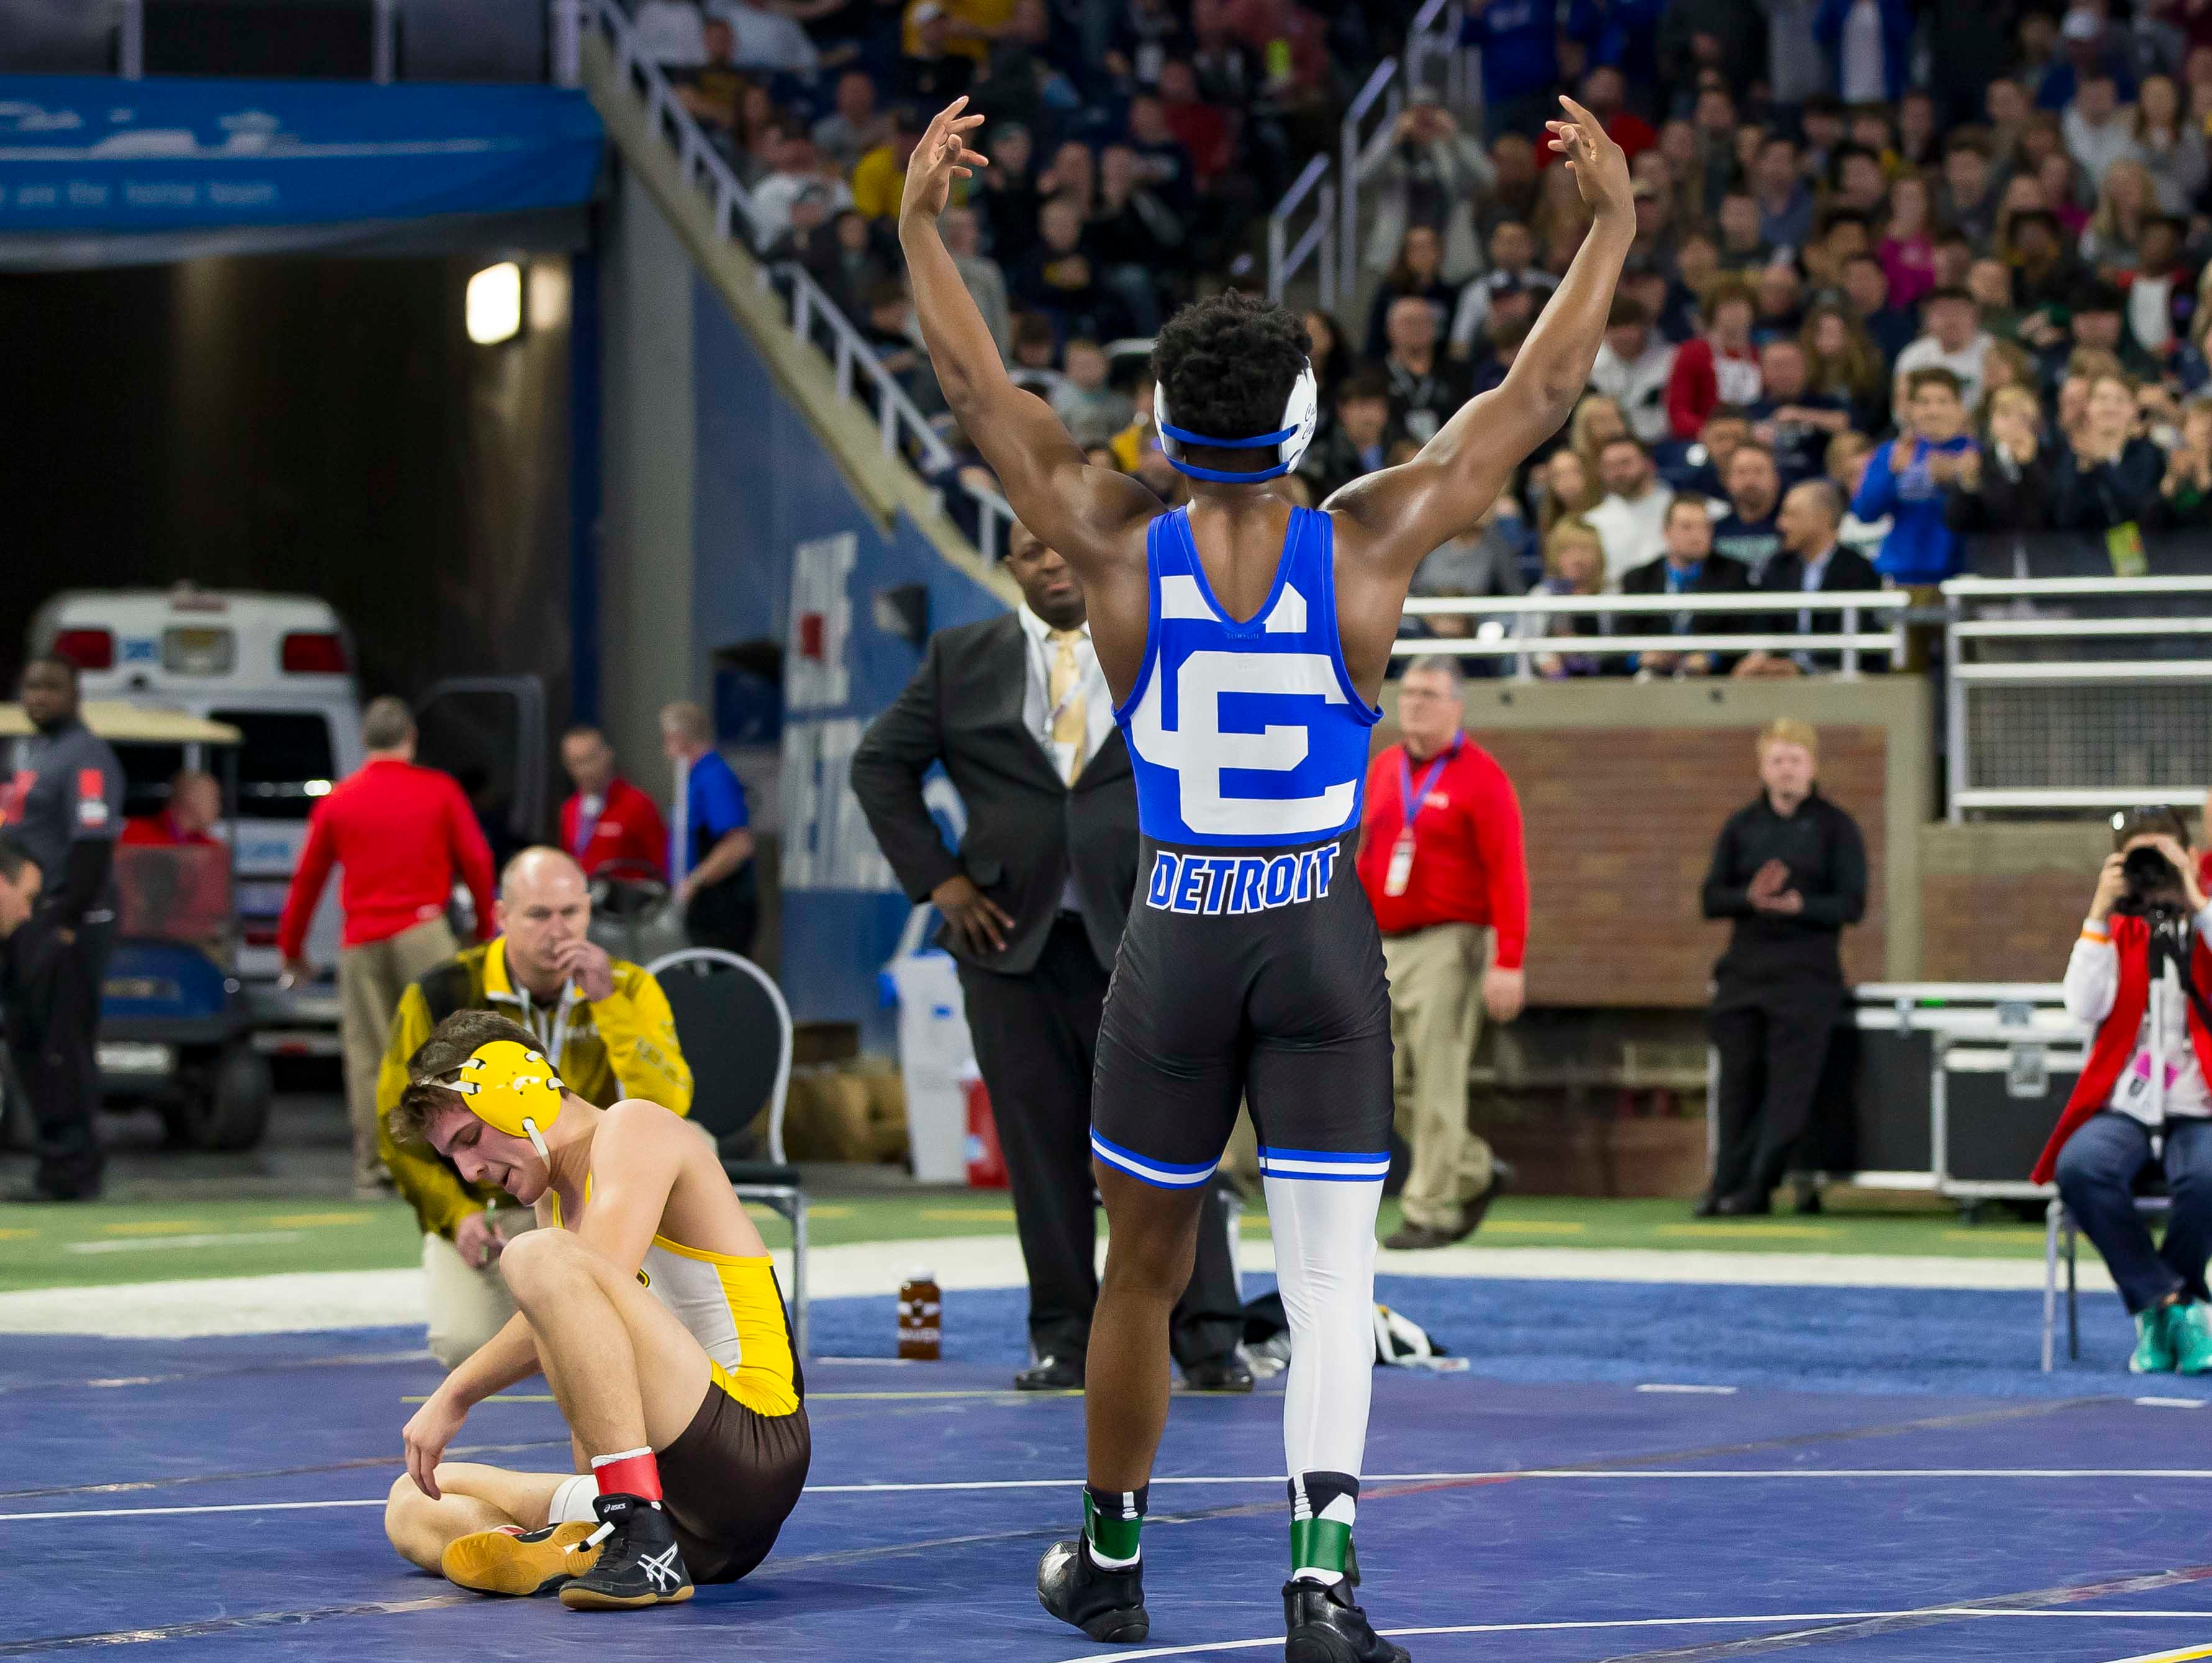 Kevon Davenport of Detroit Catholic Central plays to the crowd after defeating  Vic Schoenherr of Bay City Western during their 145-pound Division 1 championship match. This was Davenports 4th straight state championship.